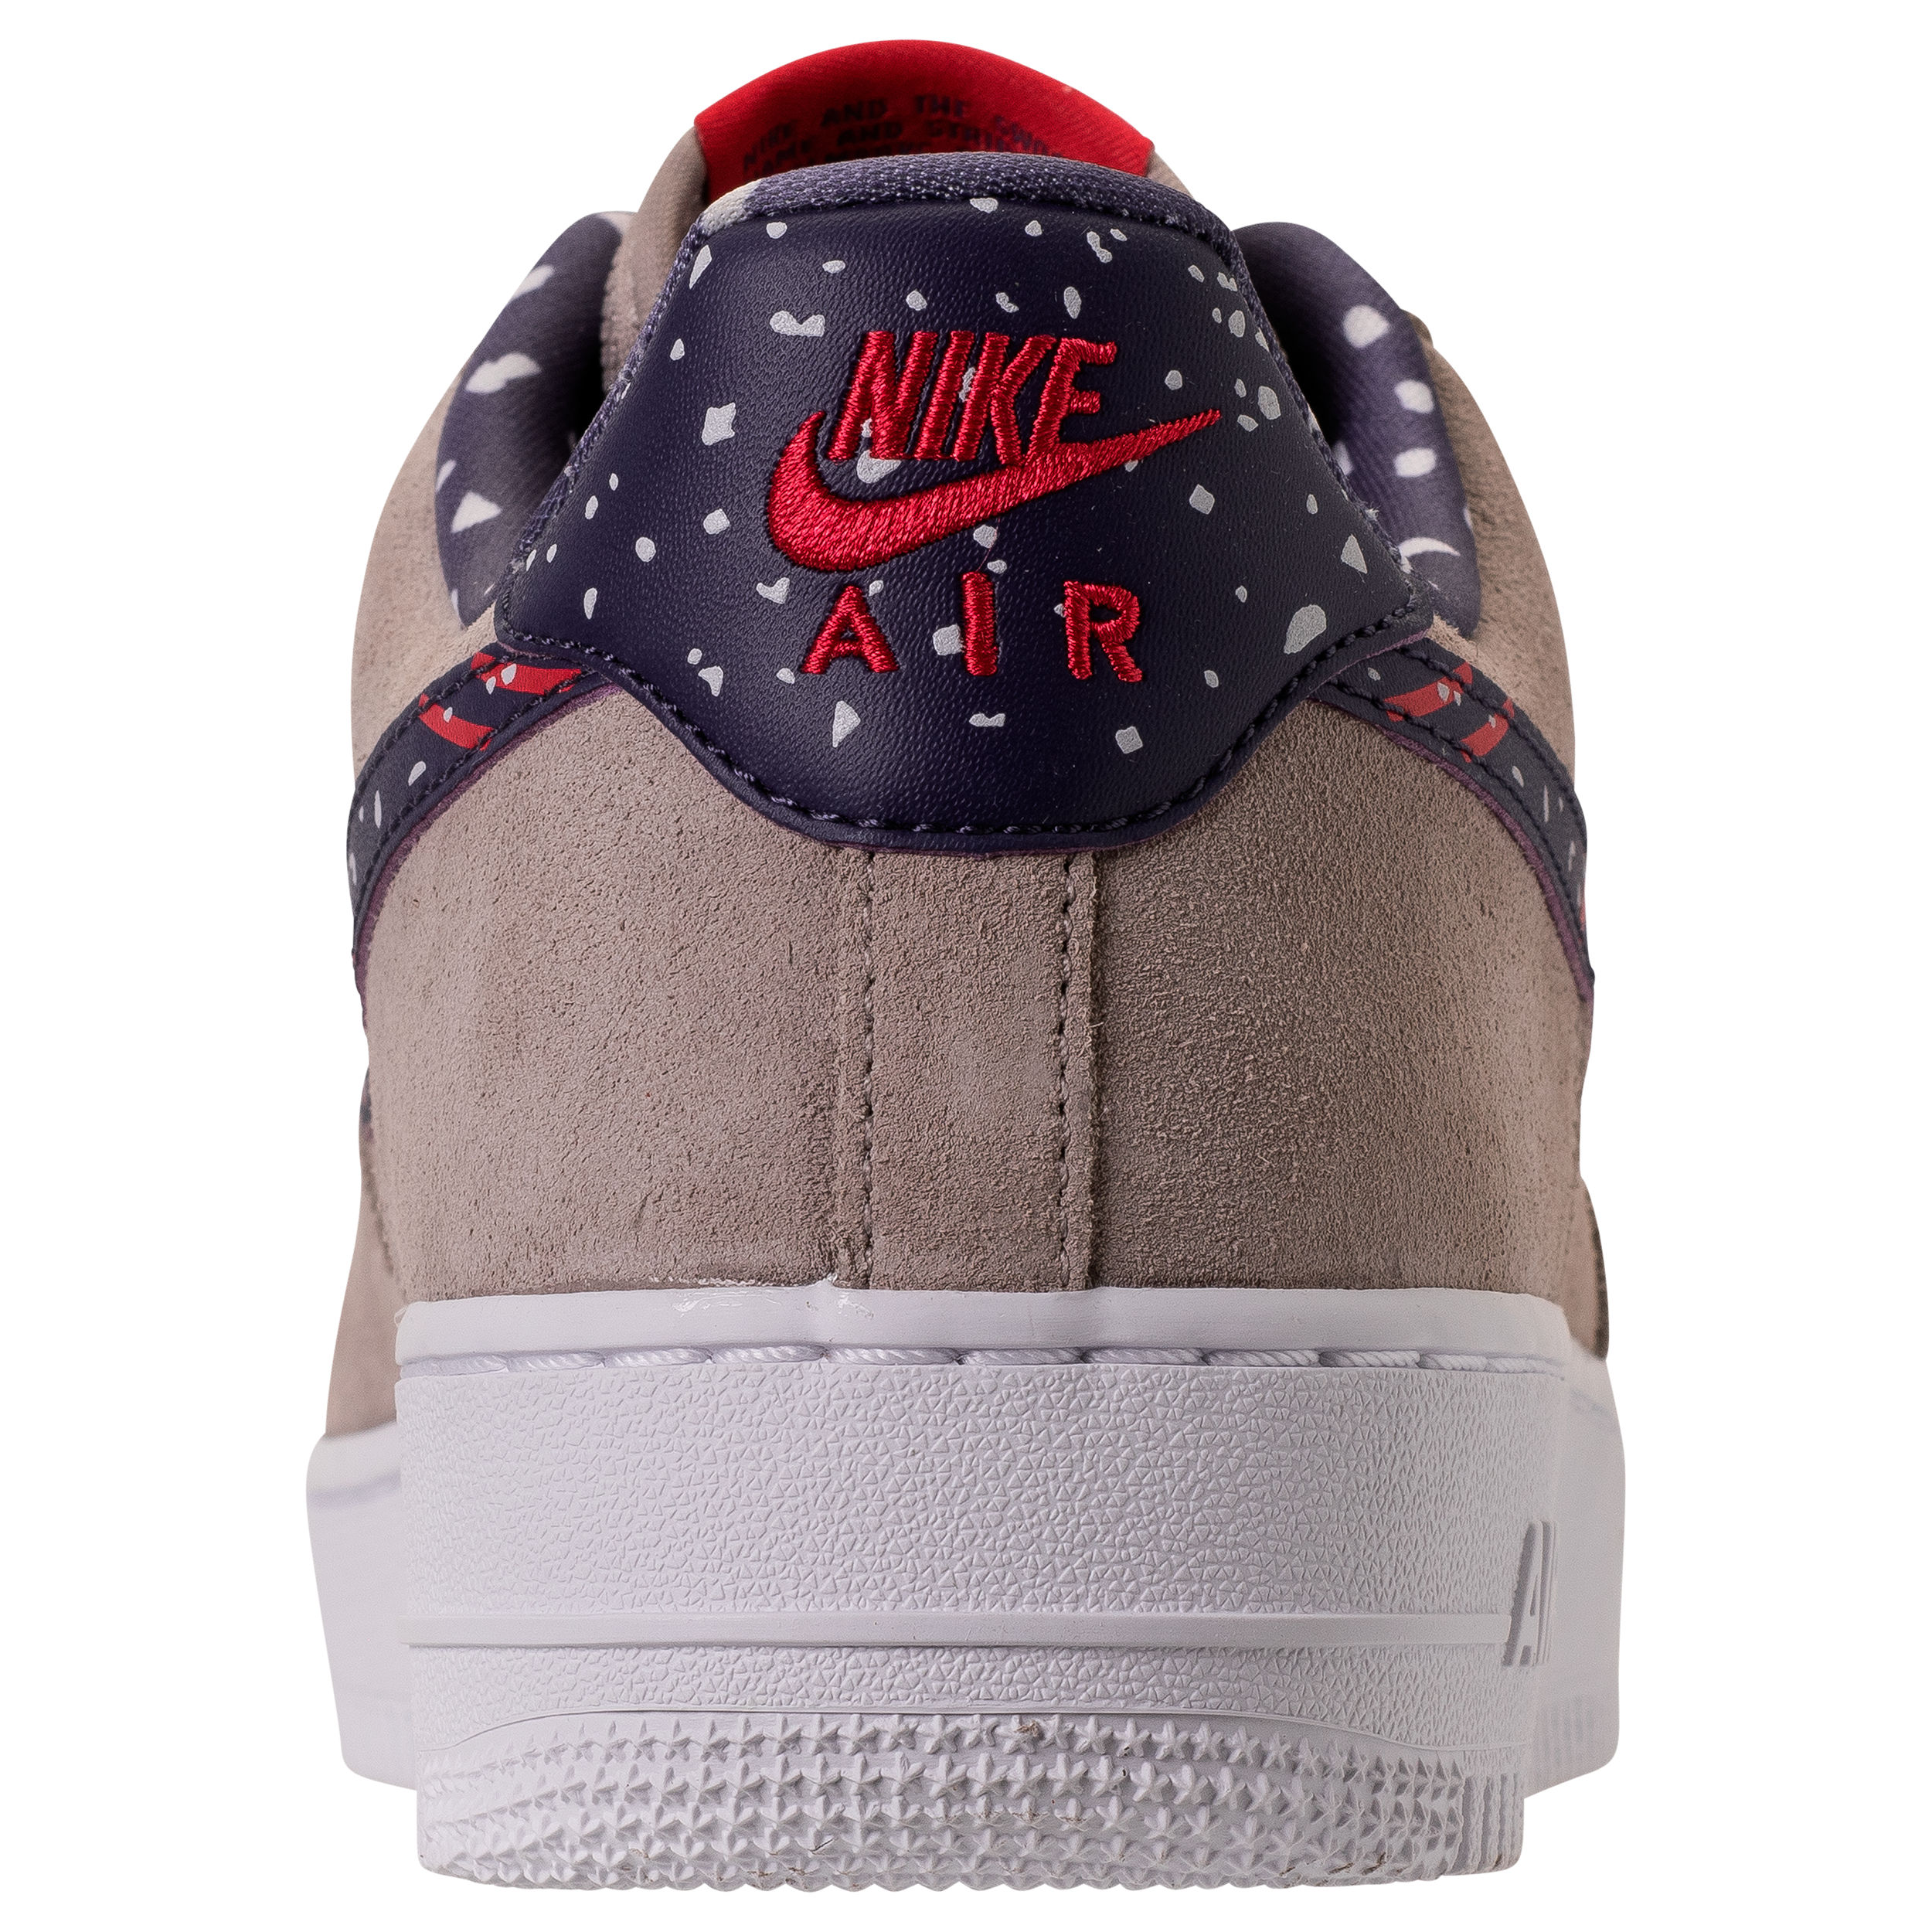 Nasa Air Force 1 4 Weartesters